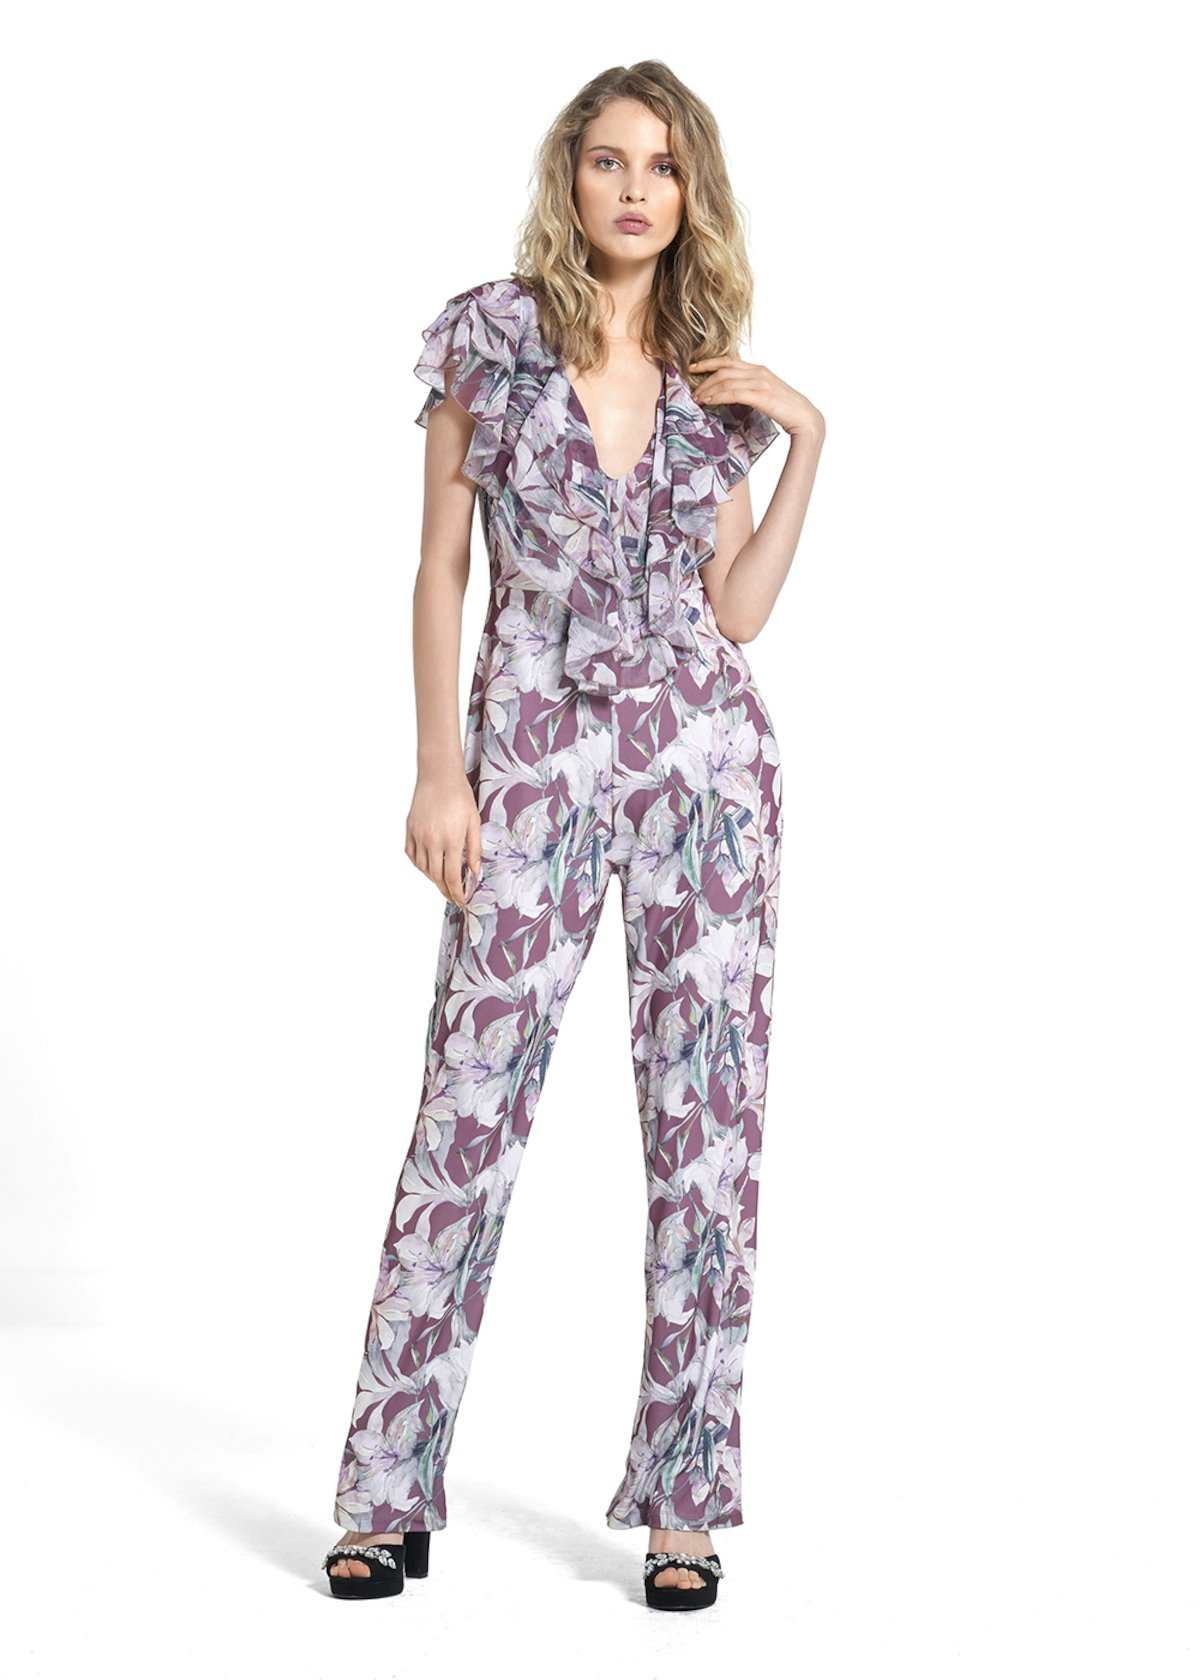 All over printed in jersey crêpe jumpsuit Teodor - Morello\ Calcite\ Fantasia - Woman